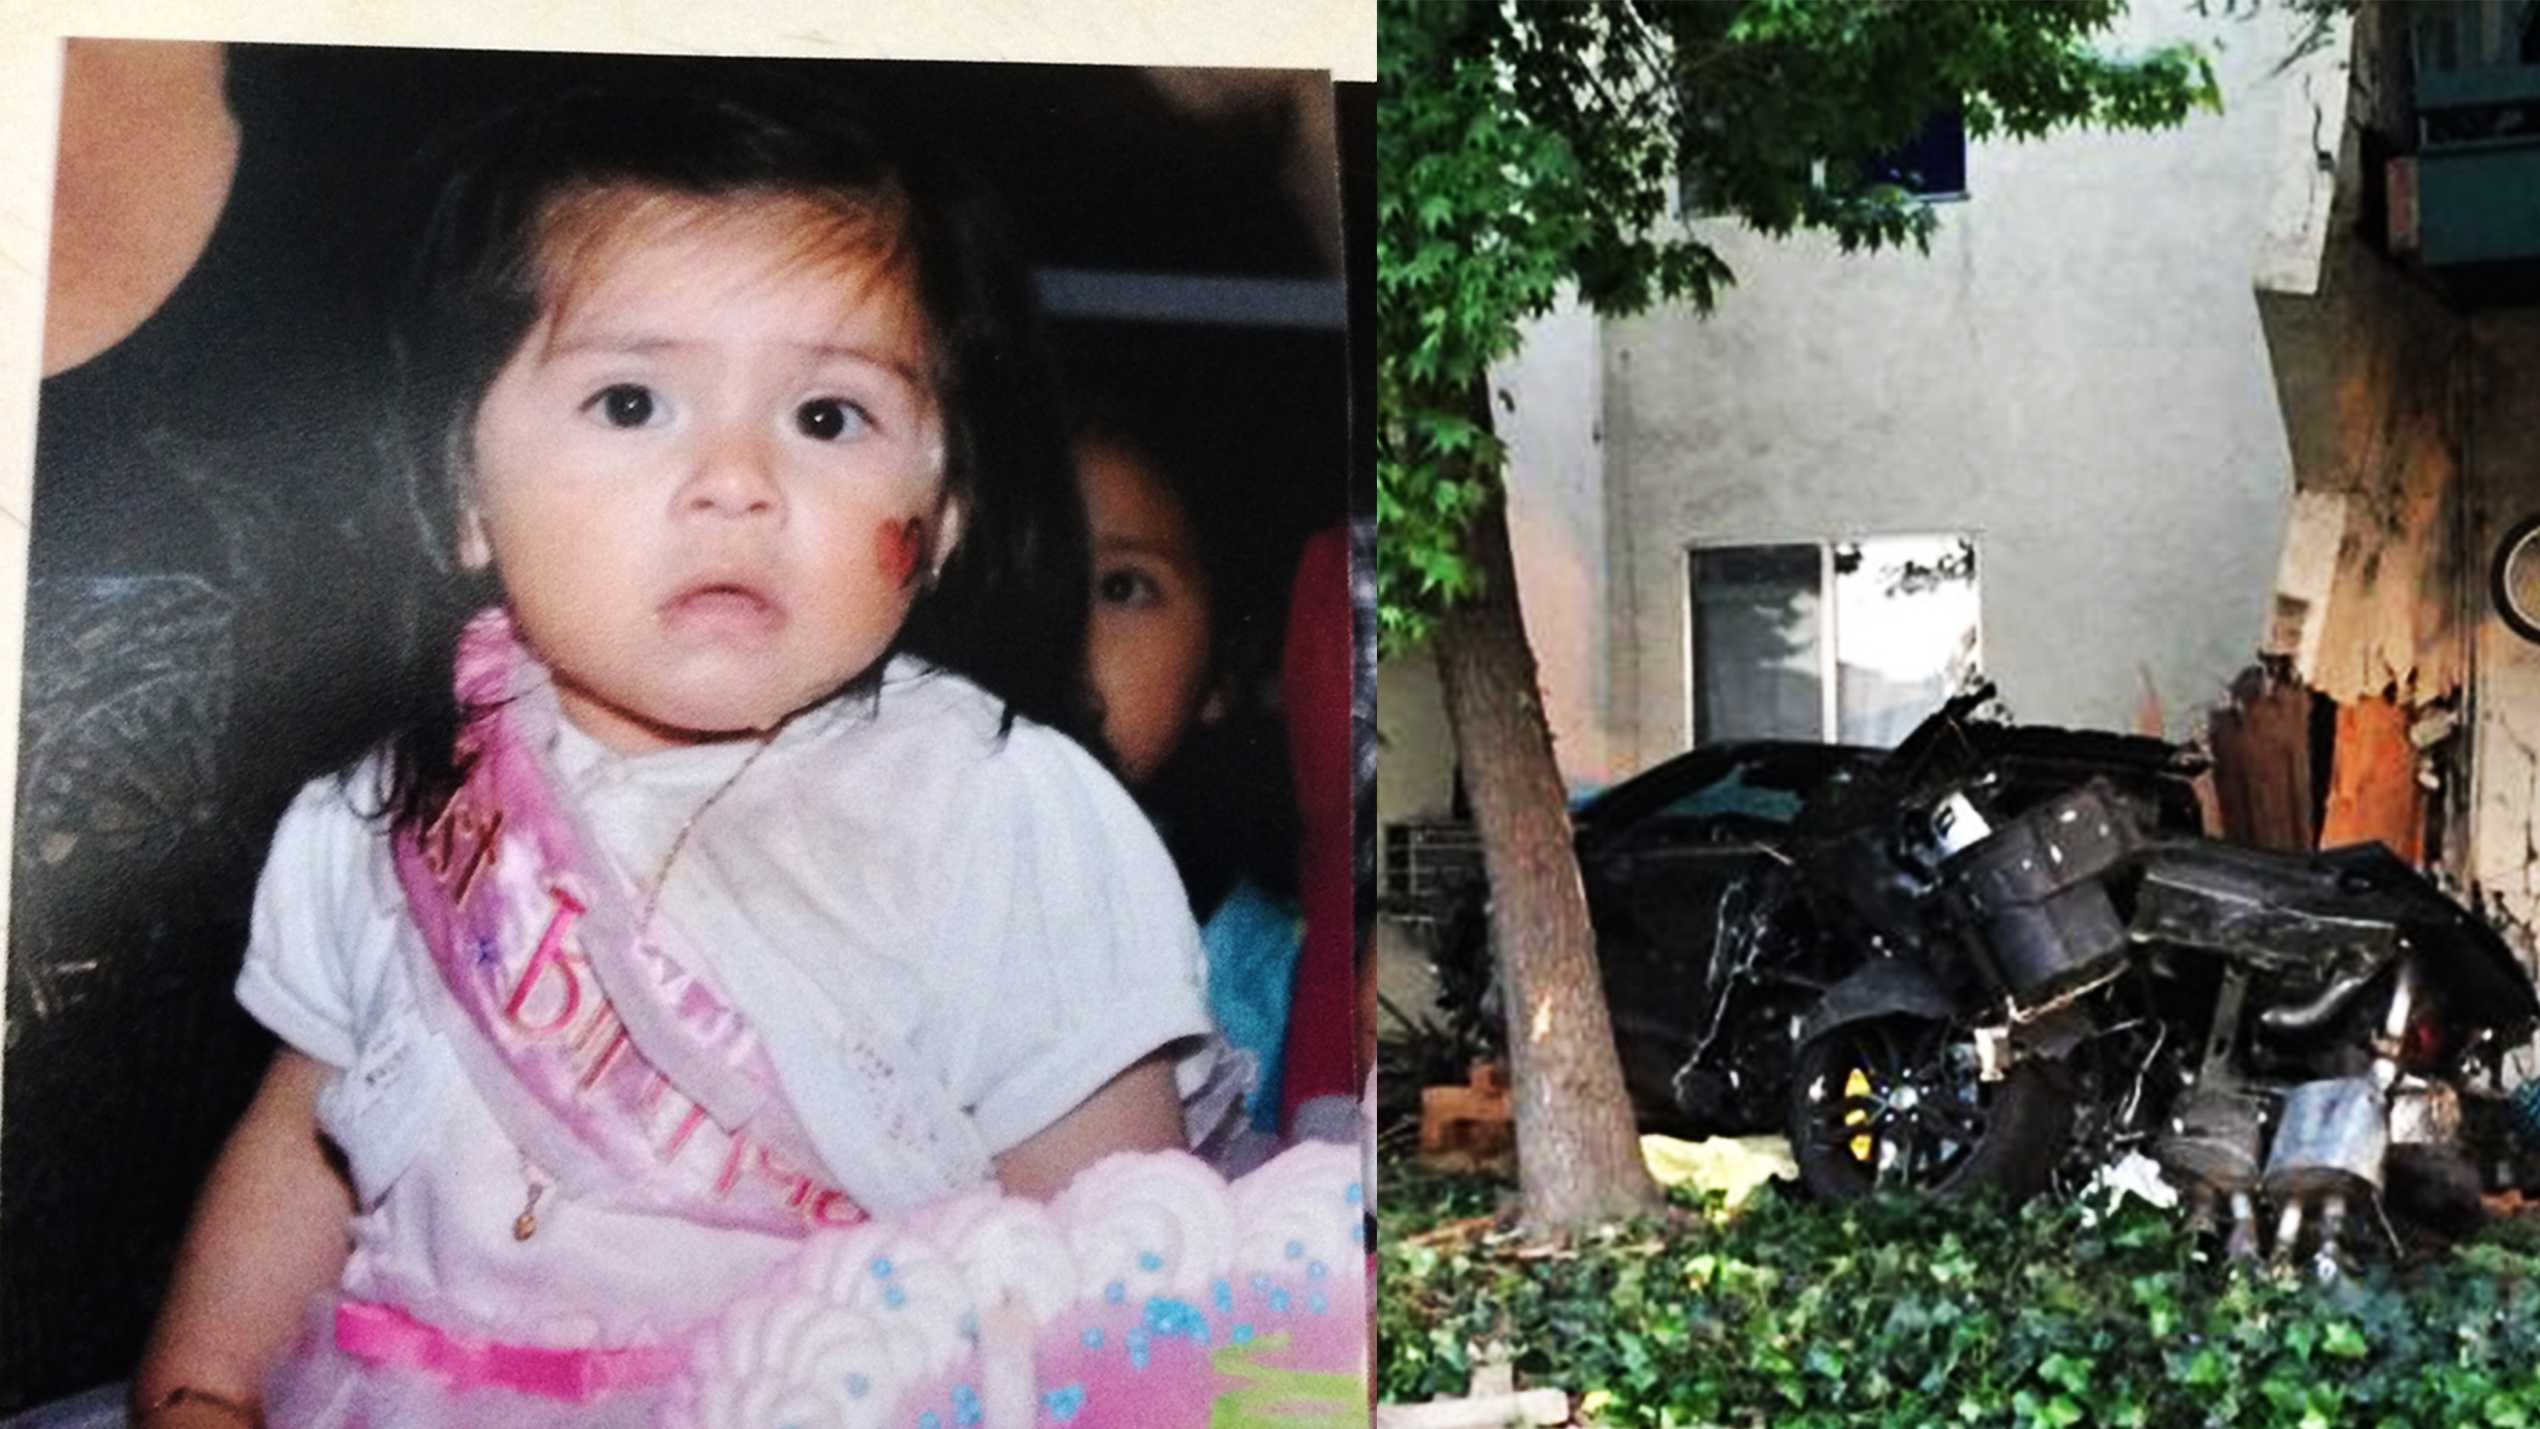 Baby Juli at her first birthday party, left, and the crash scene, right.